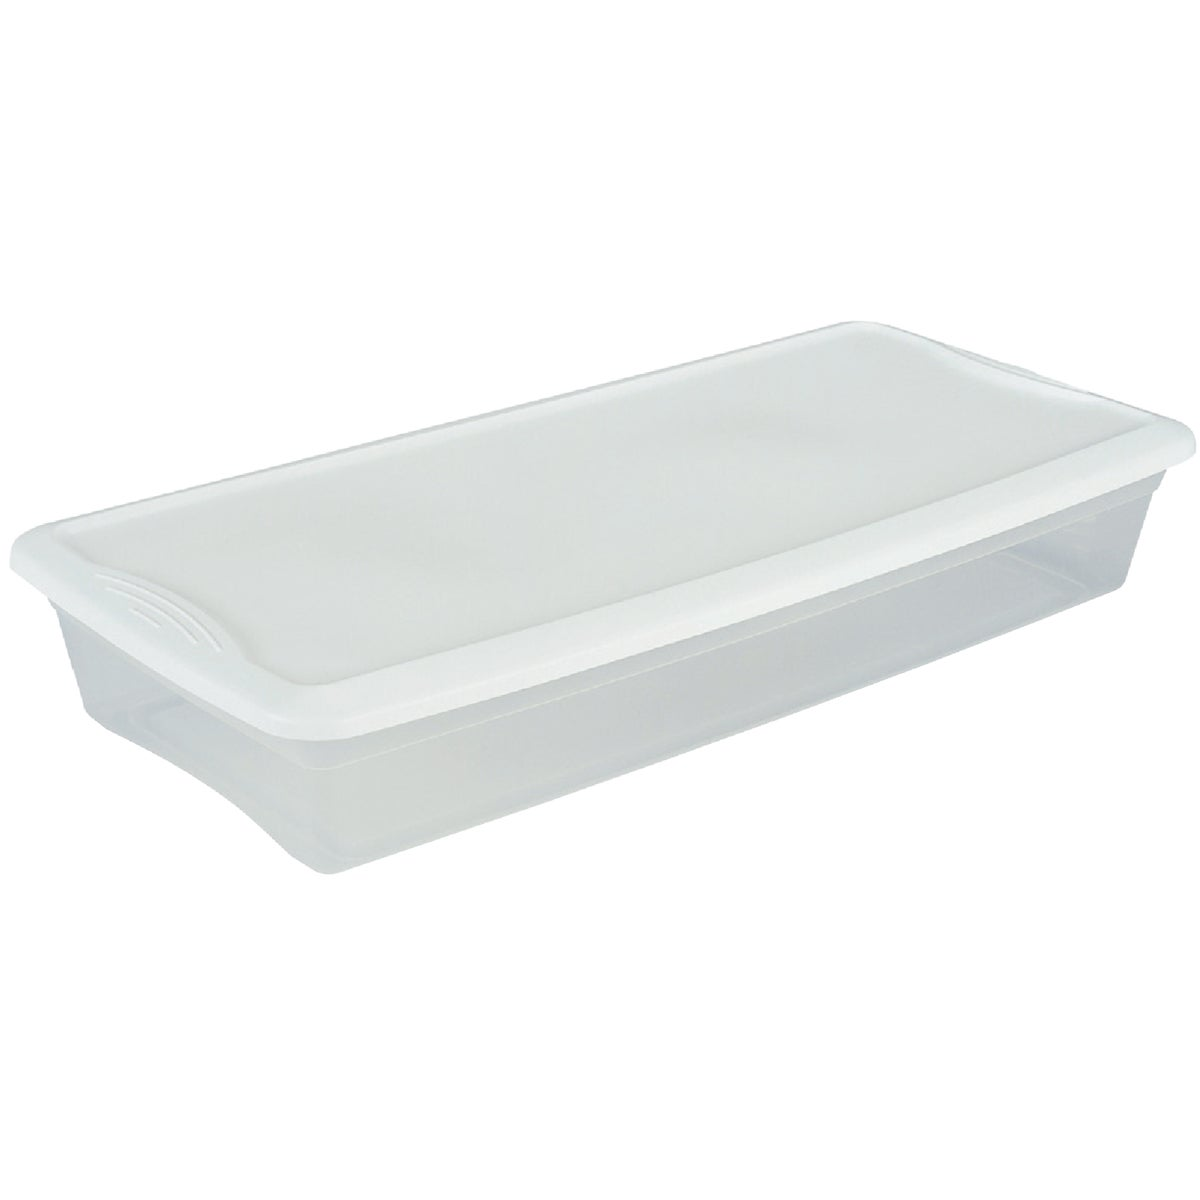 41 QUART UNDERBED BOX - 19608006 by Sterilite Corp